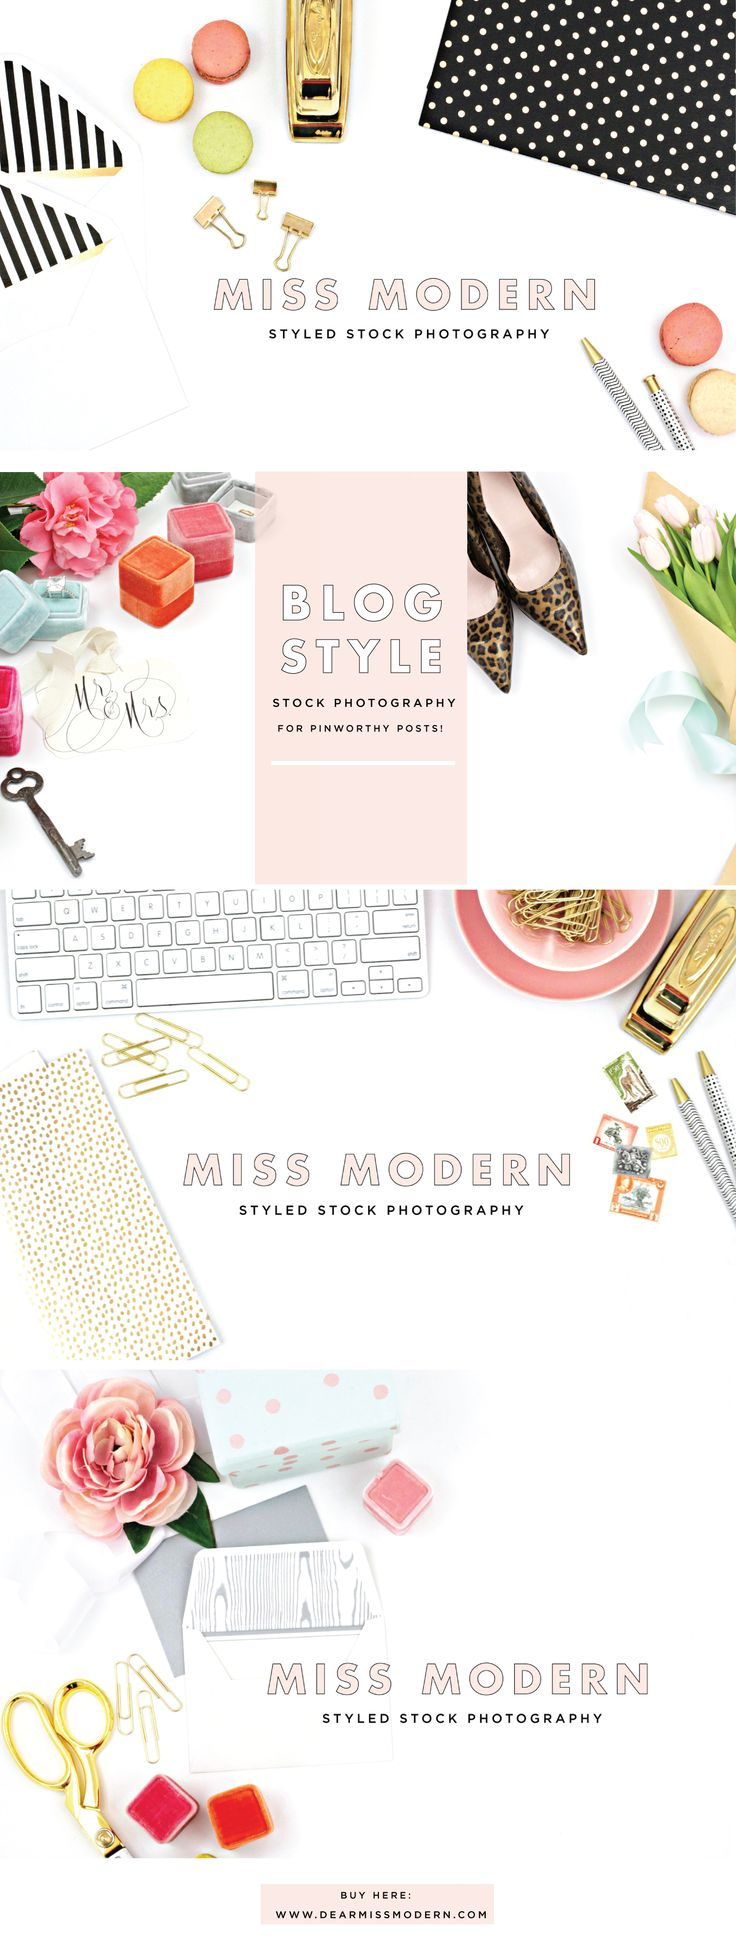 New Styled Stock Photography in the Miss Modern Shop. For Bloggers, wedding planners, designers, shop owners & businesses. xo